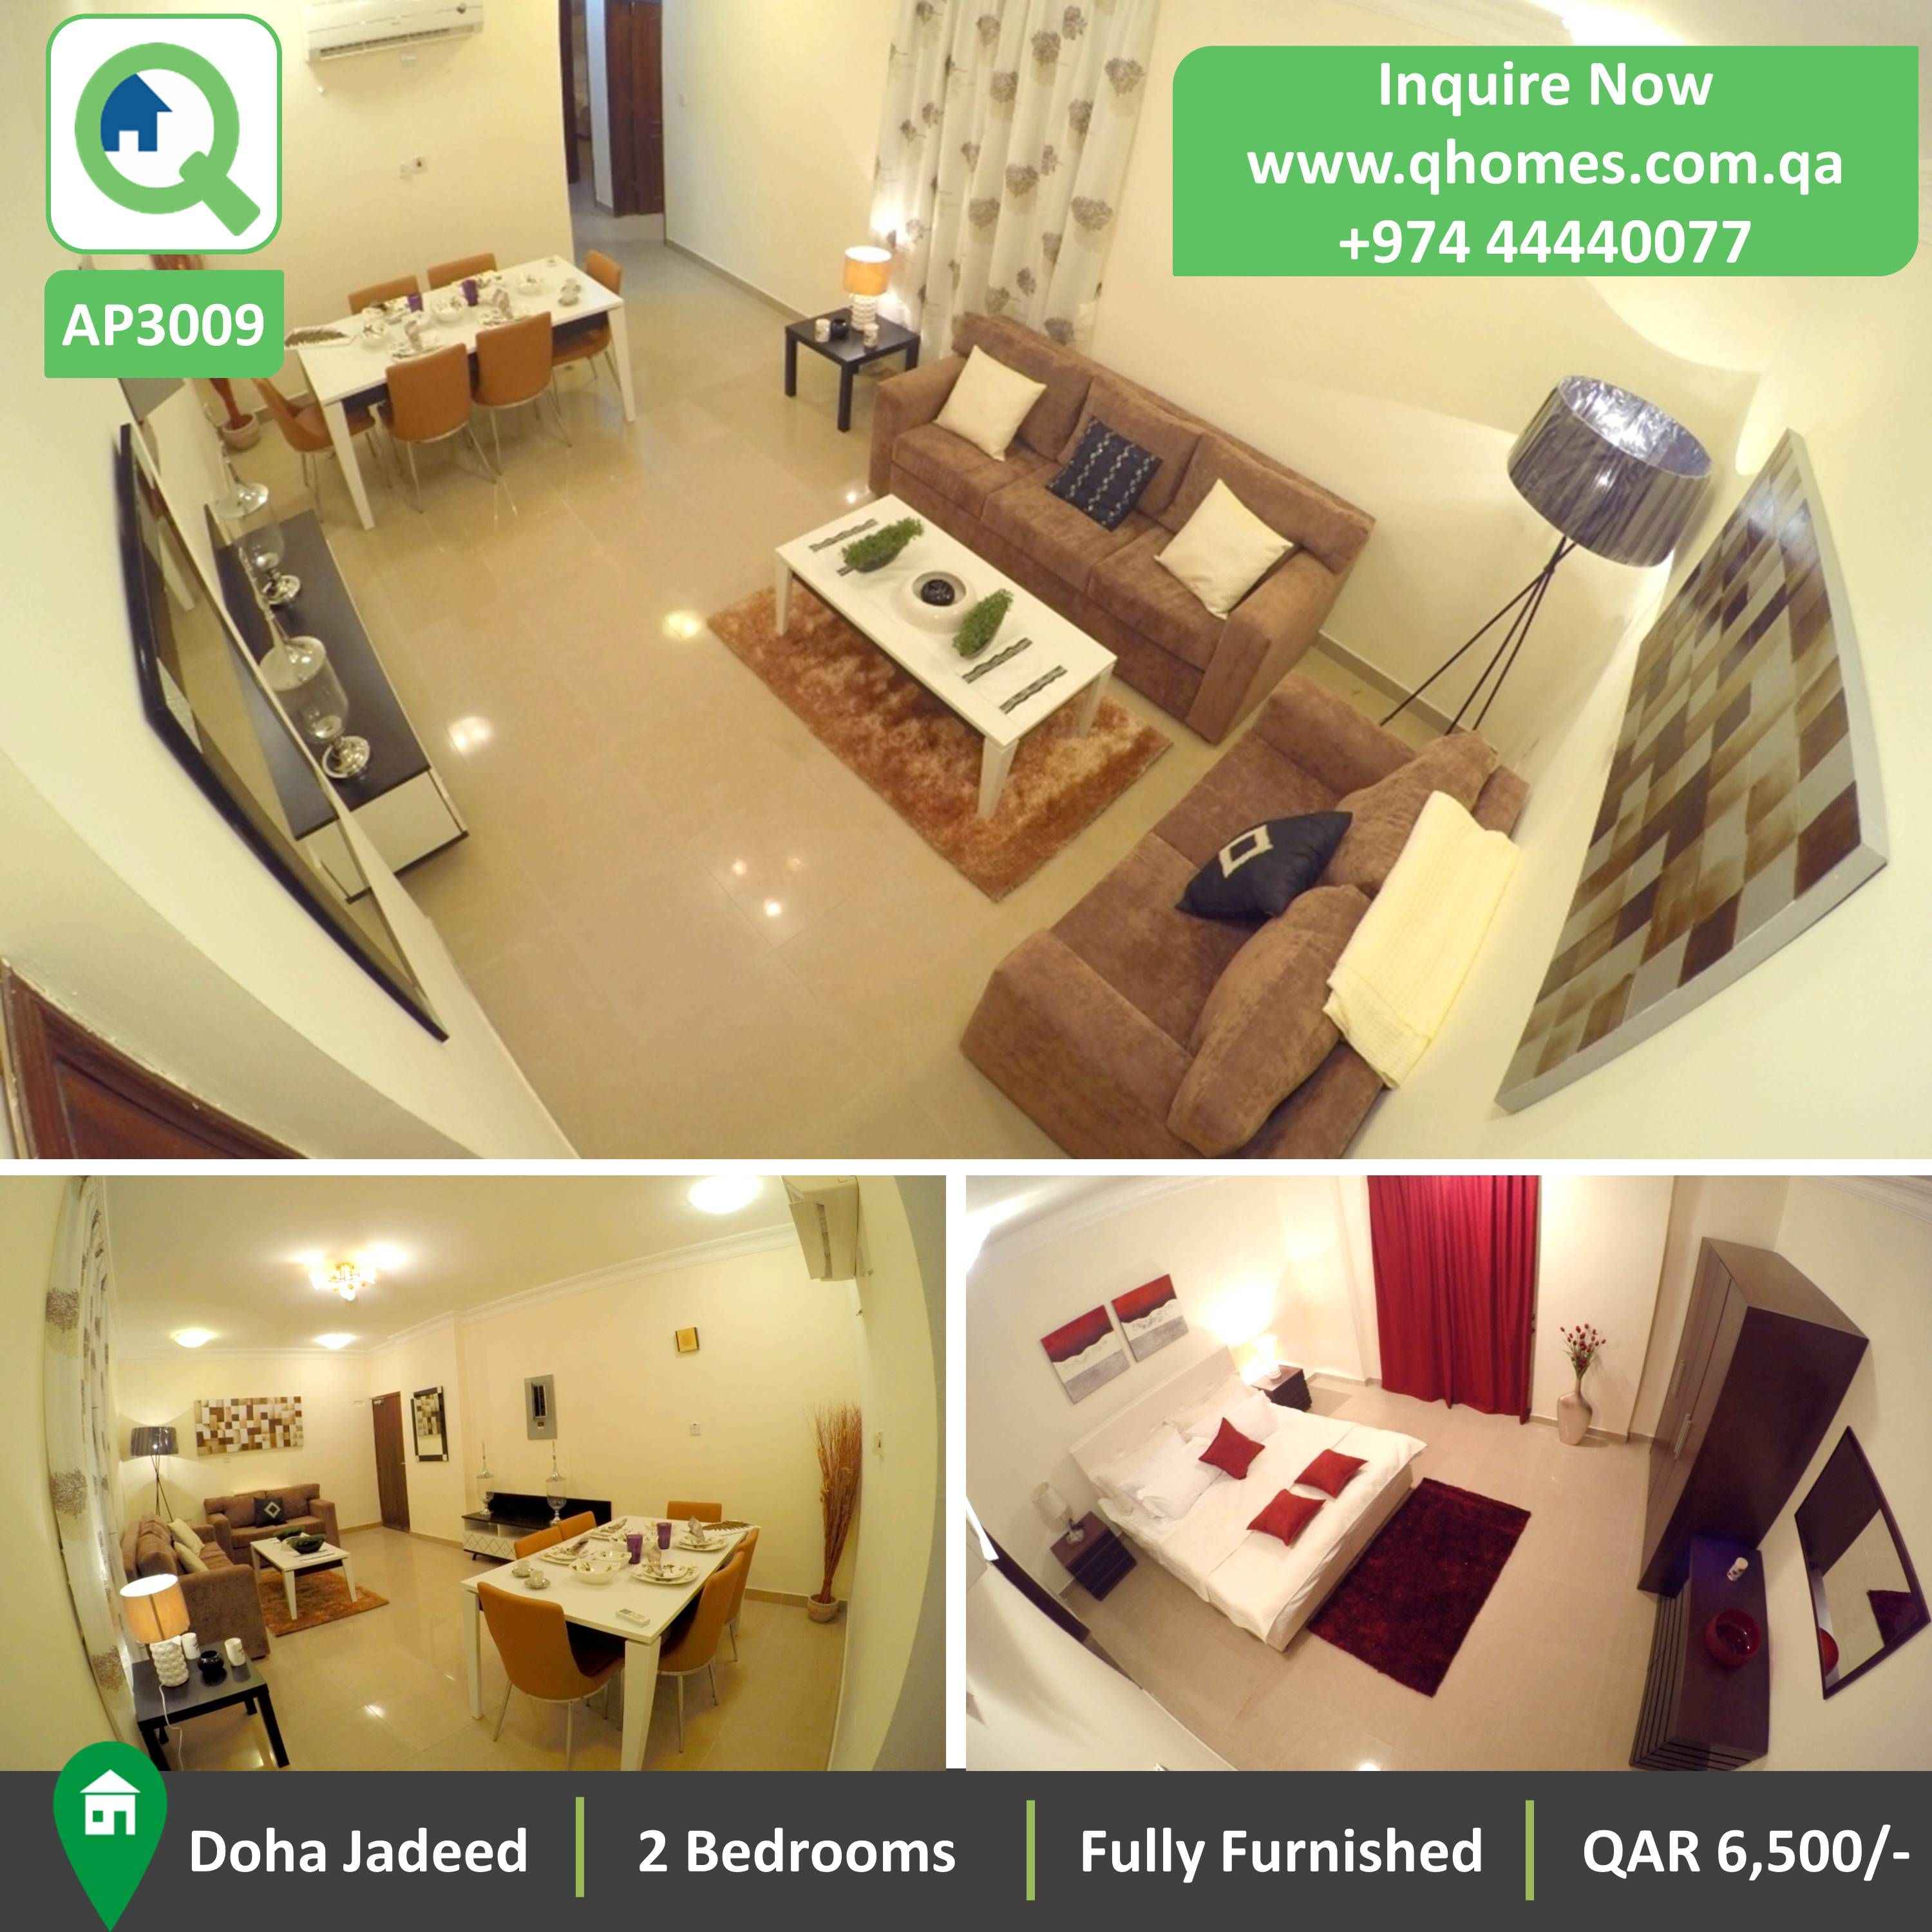 Apartment For Rent In Doha Jadeed Fully Furnished 2 Bedrooms Apartment For Rent In Doha Jadeed At Qa 1 Bedroom Apartment Finding Apartments Bedroom Apartment